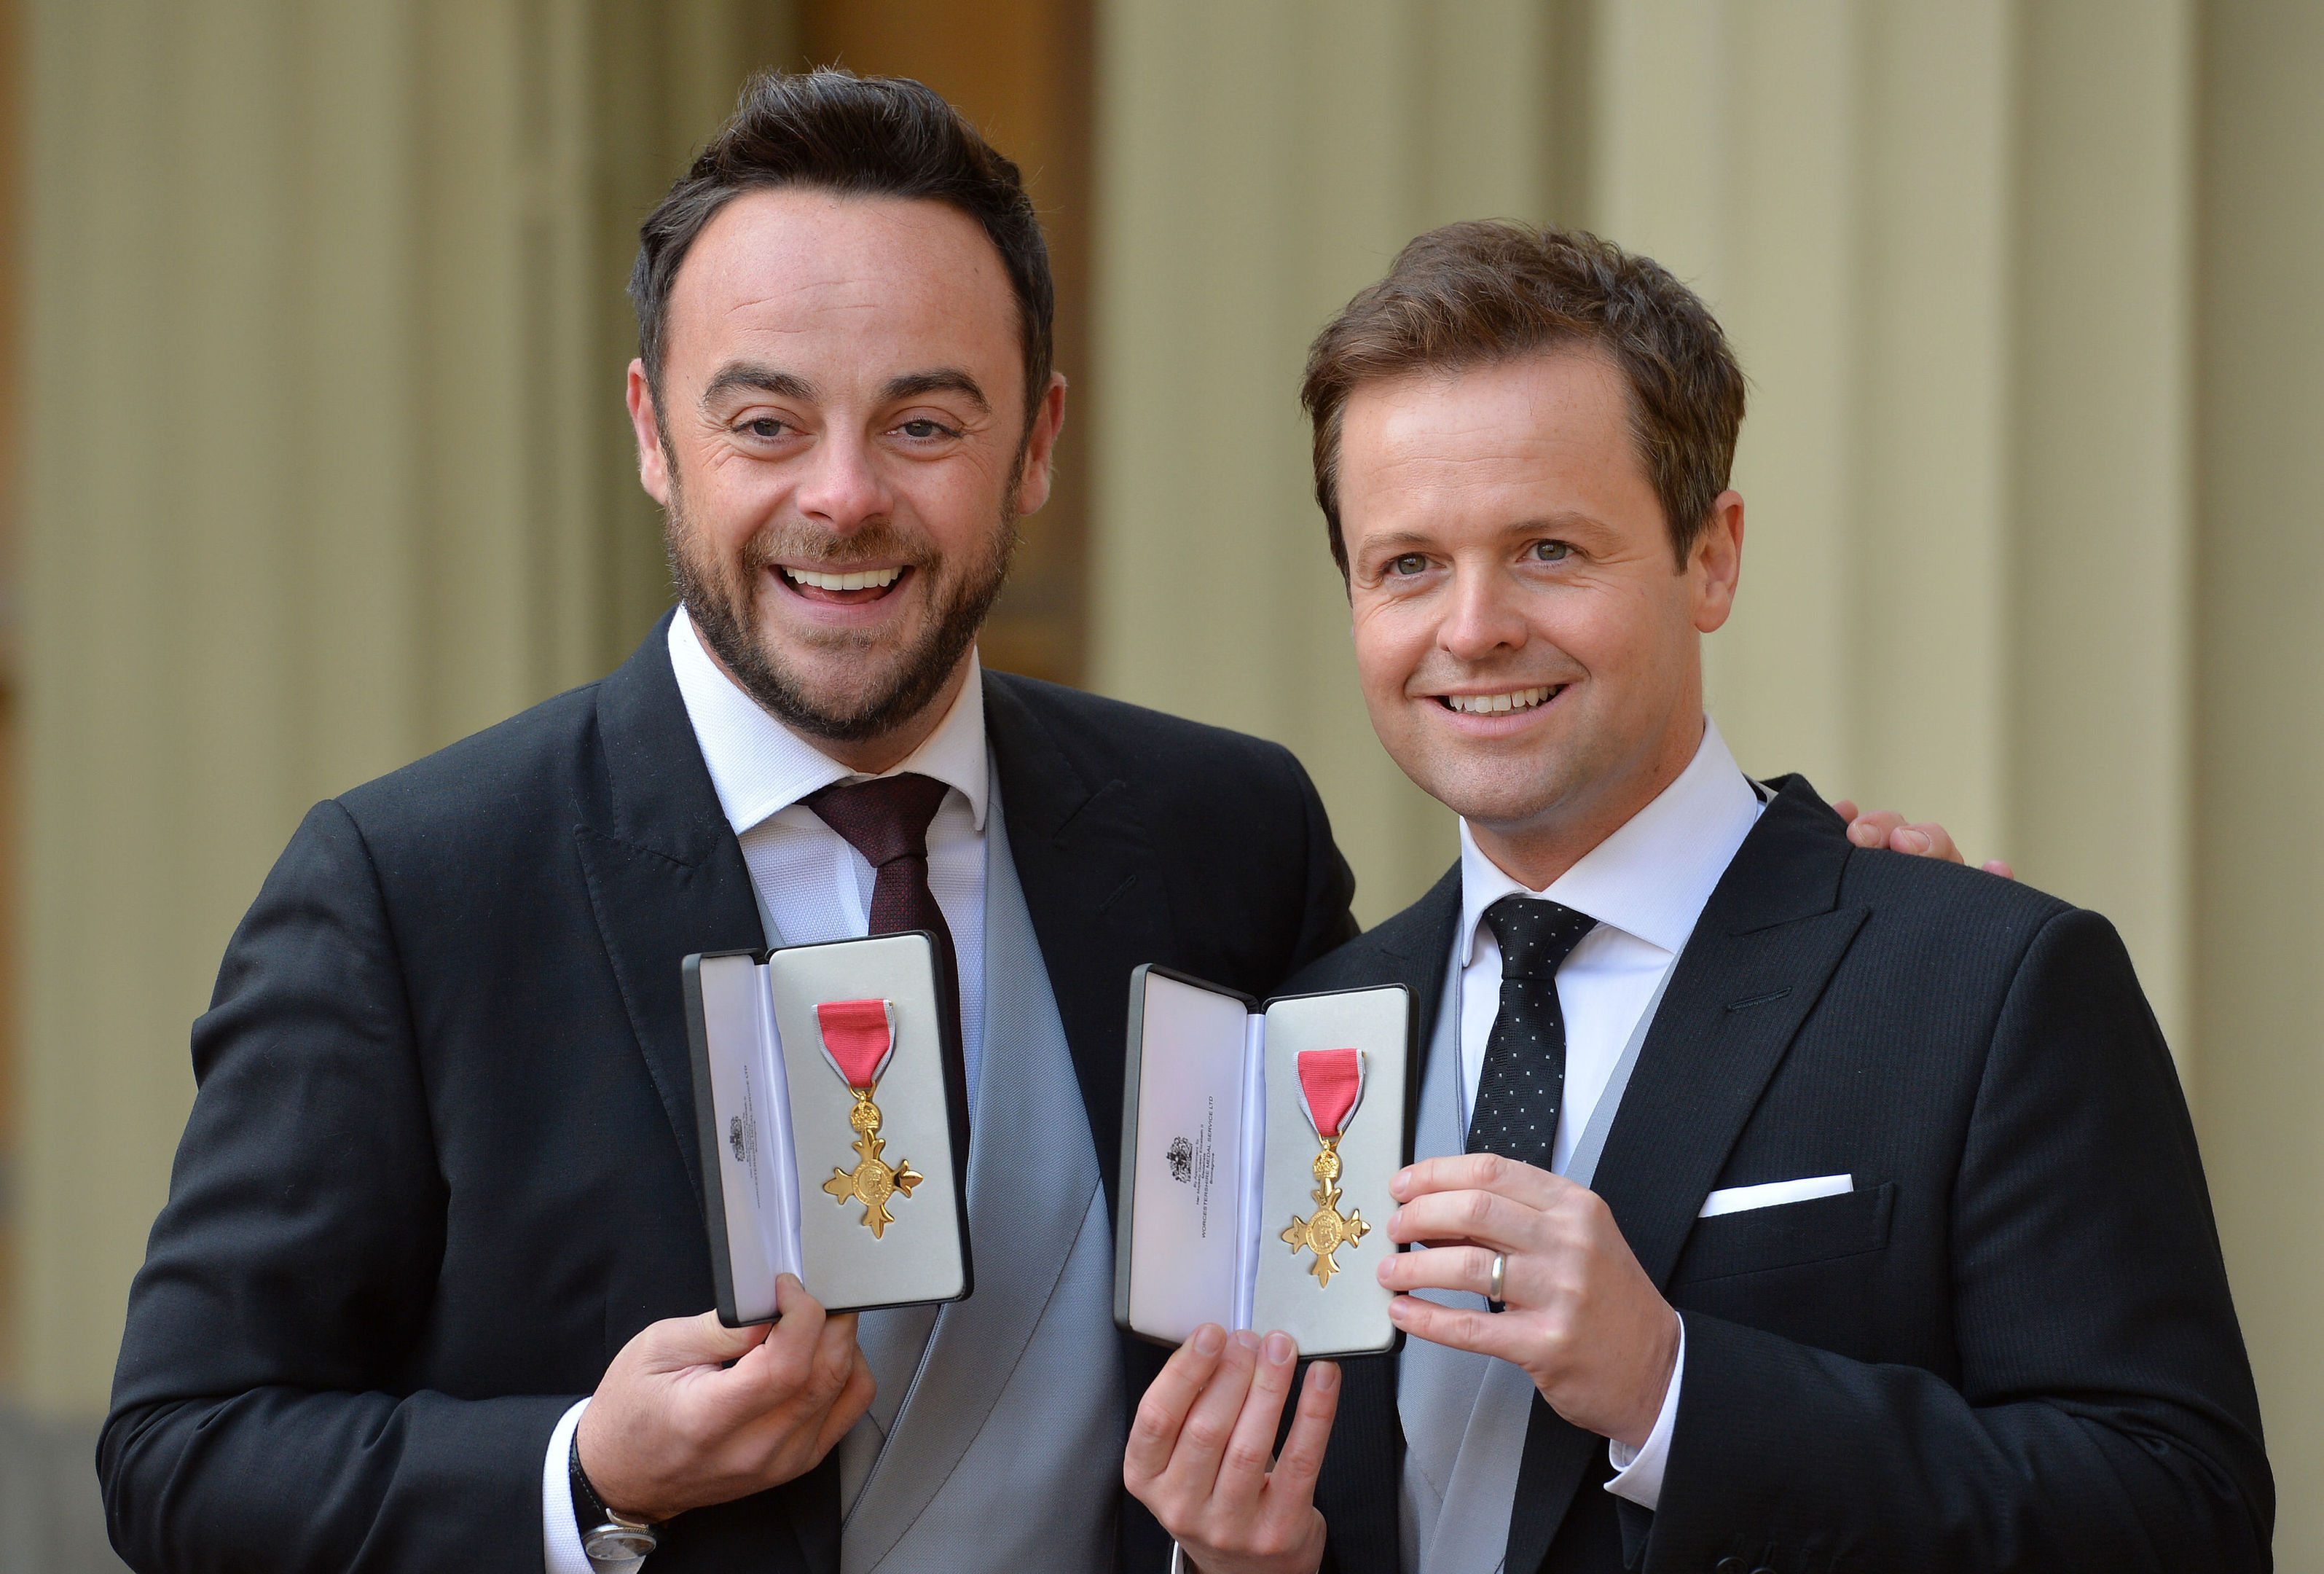 TV presenters Ant and Dec after they were presented with OBEs by the Prince of Wales (PA)